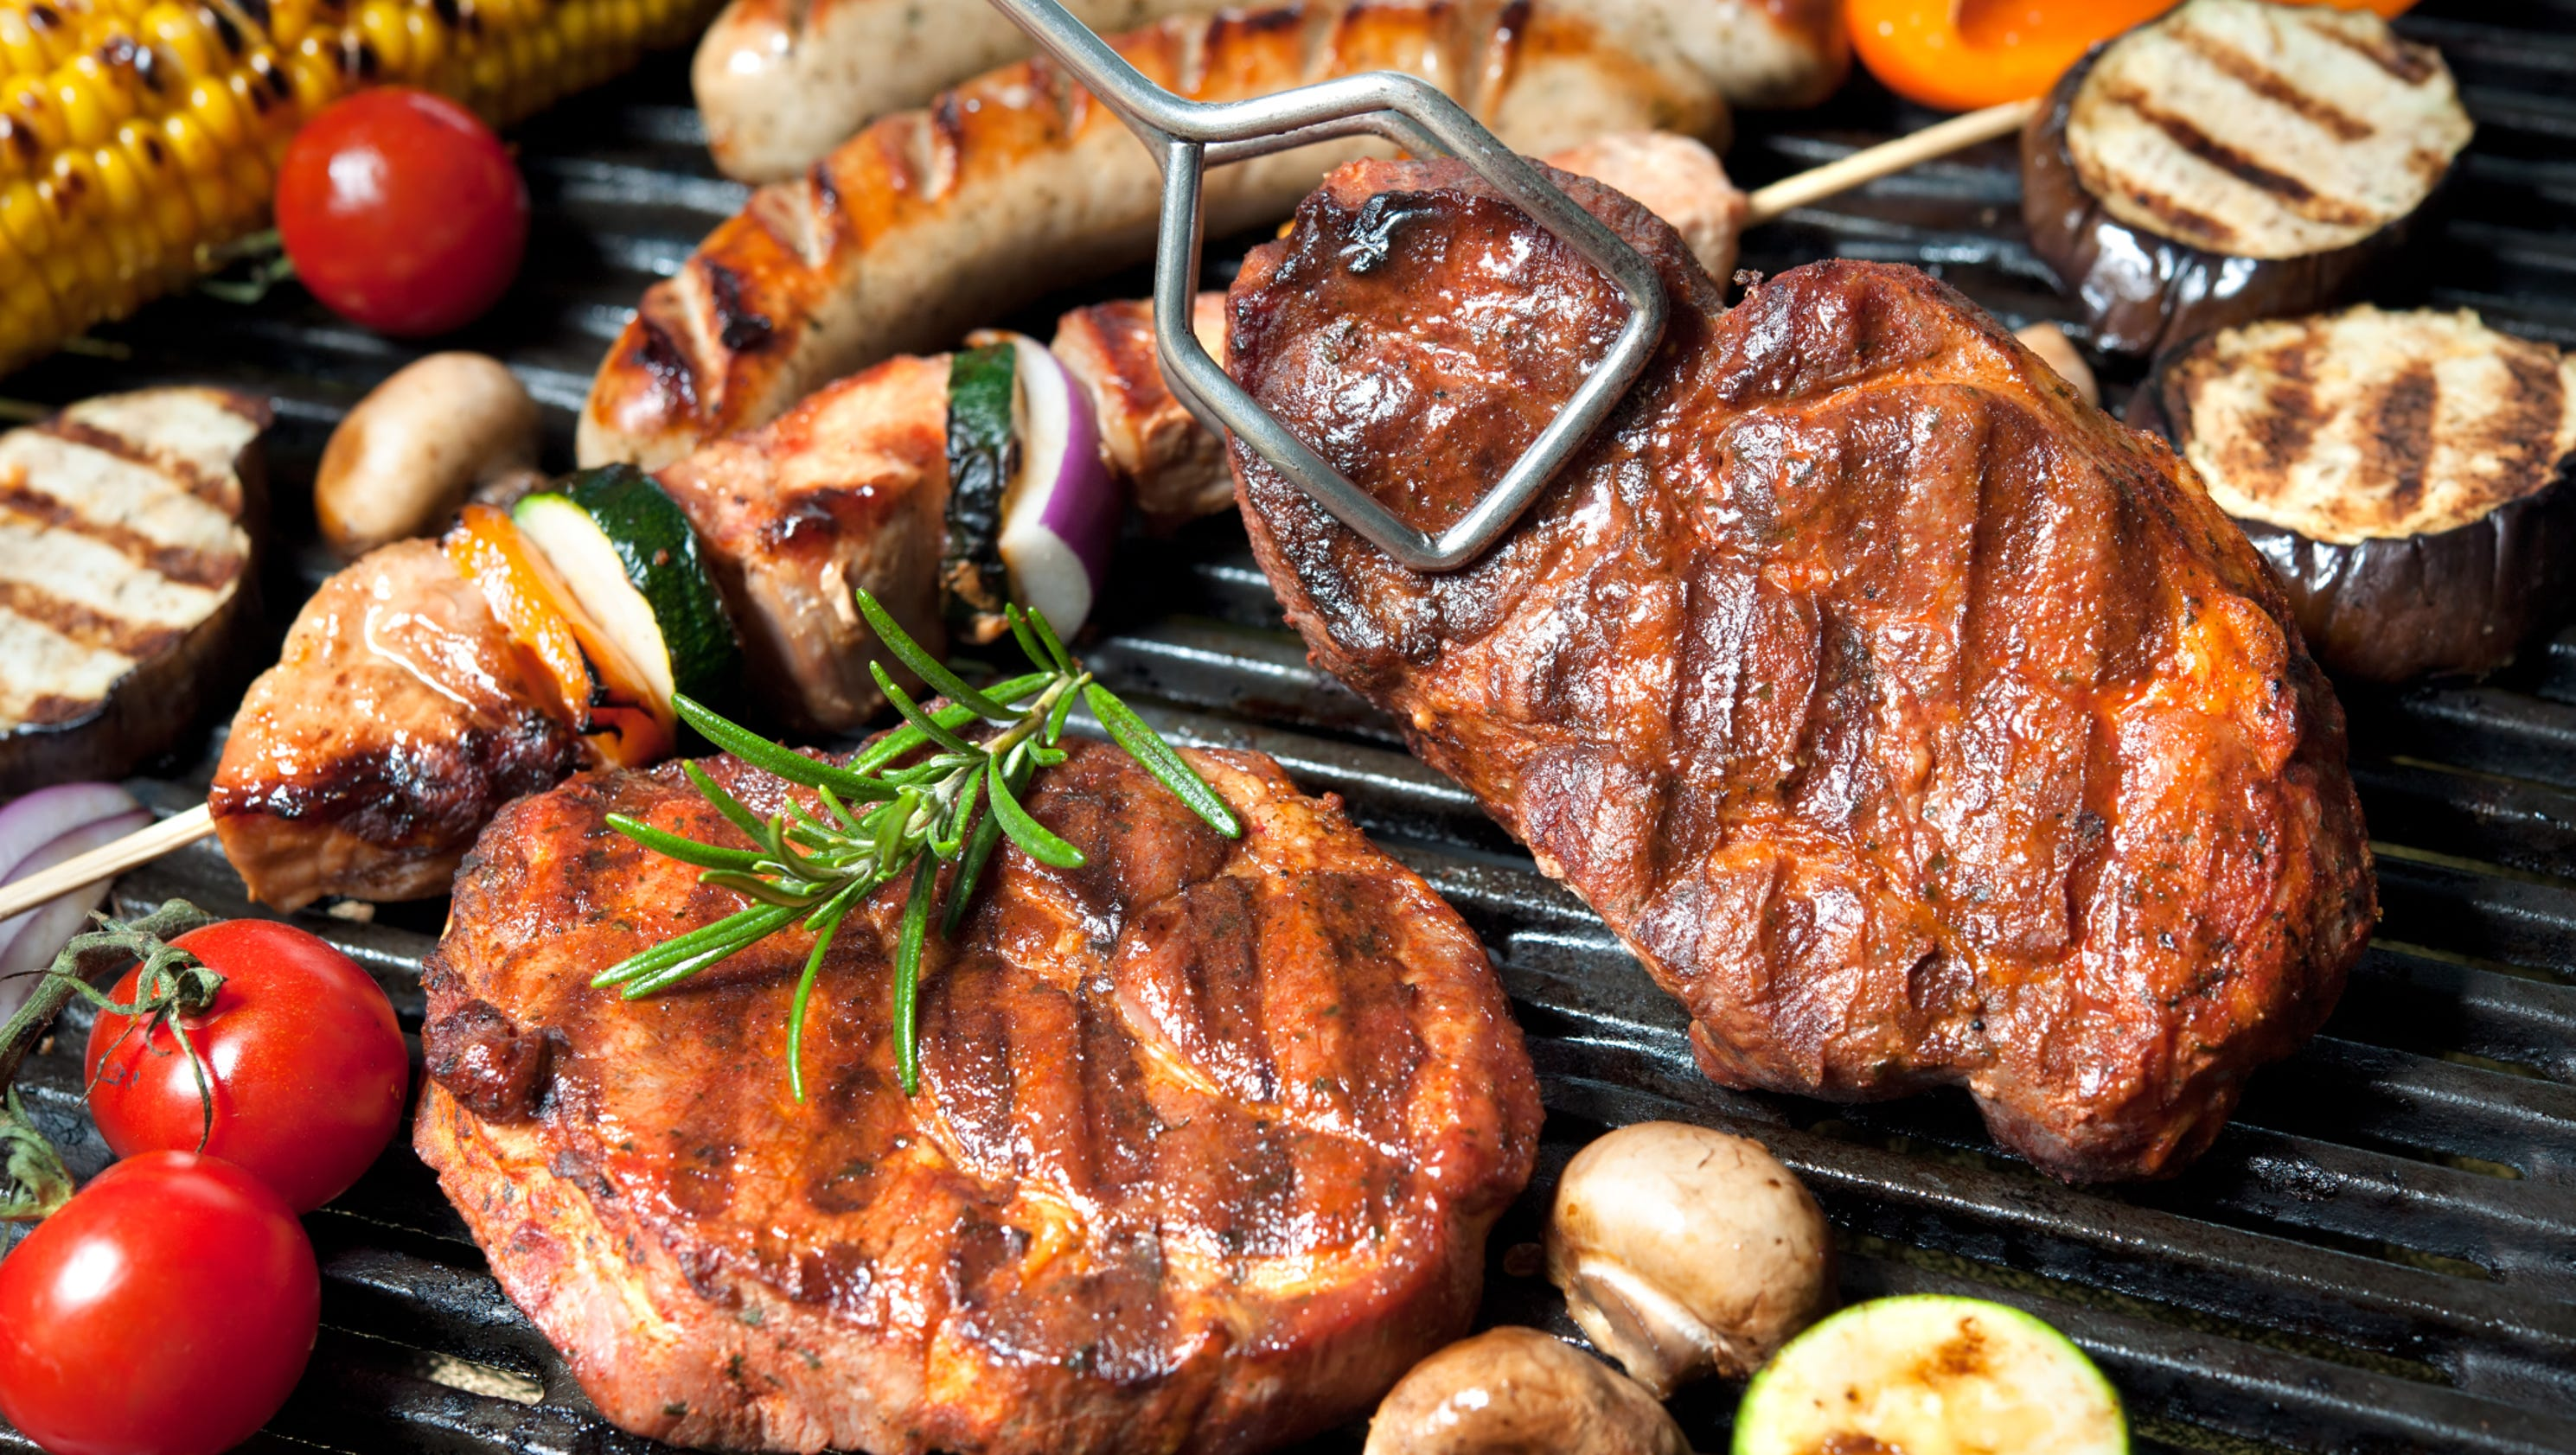 Deals: Get Grilling With A Grocery Gift Card!